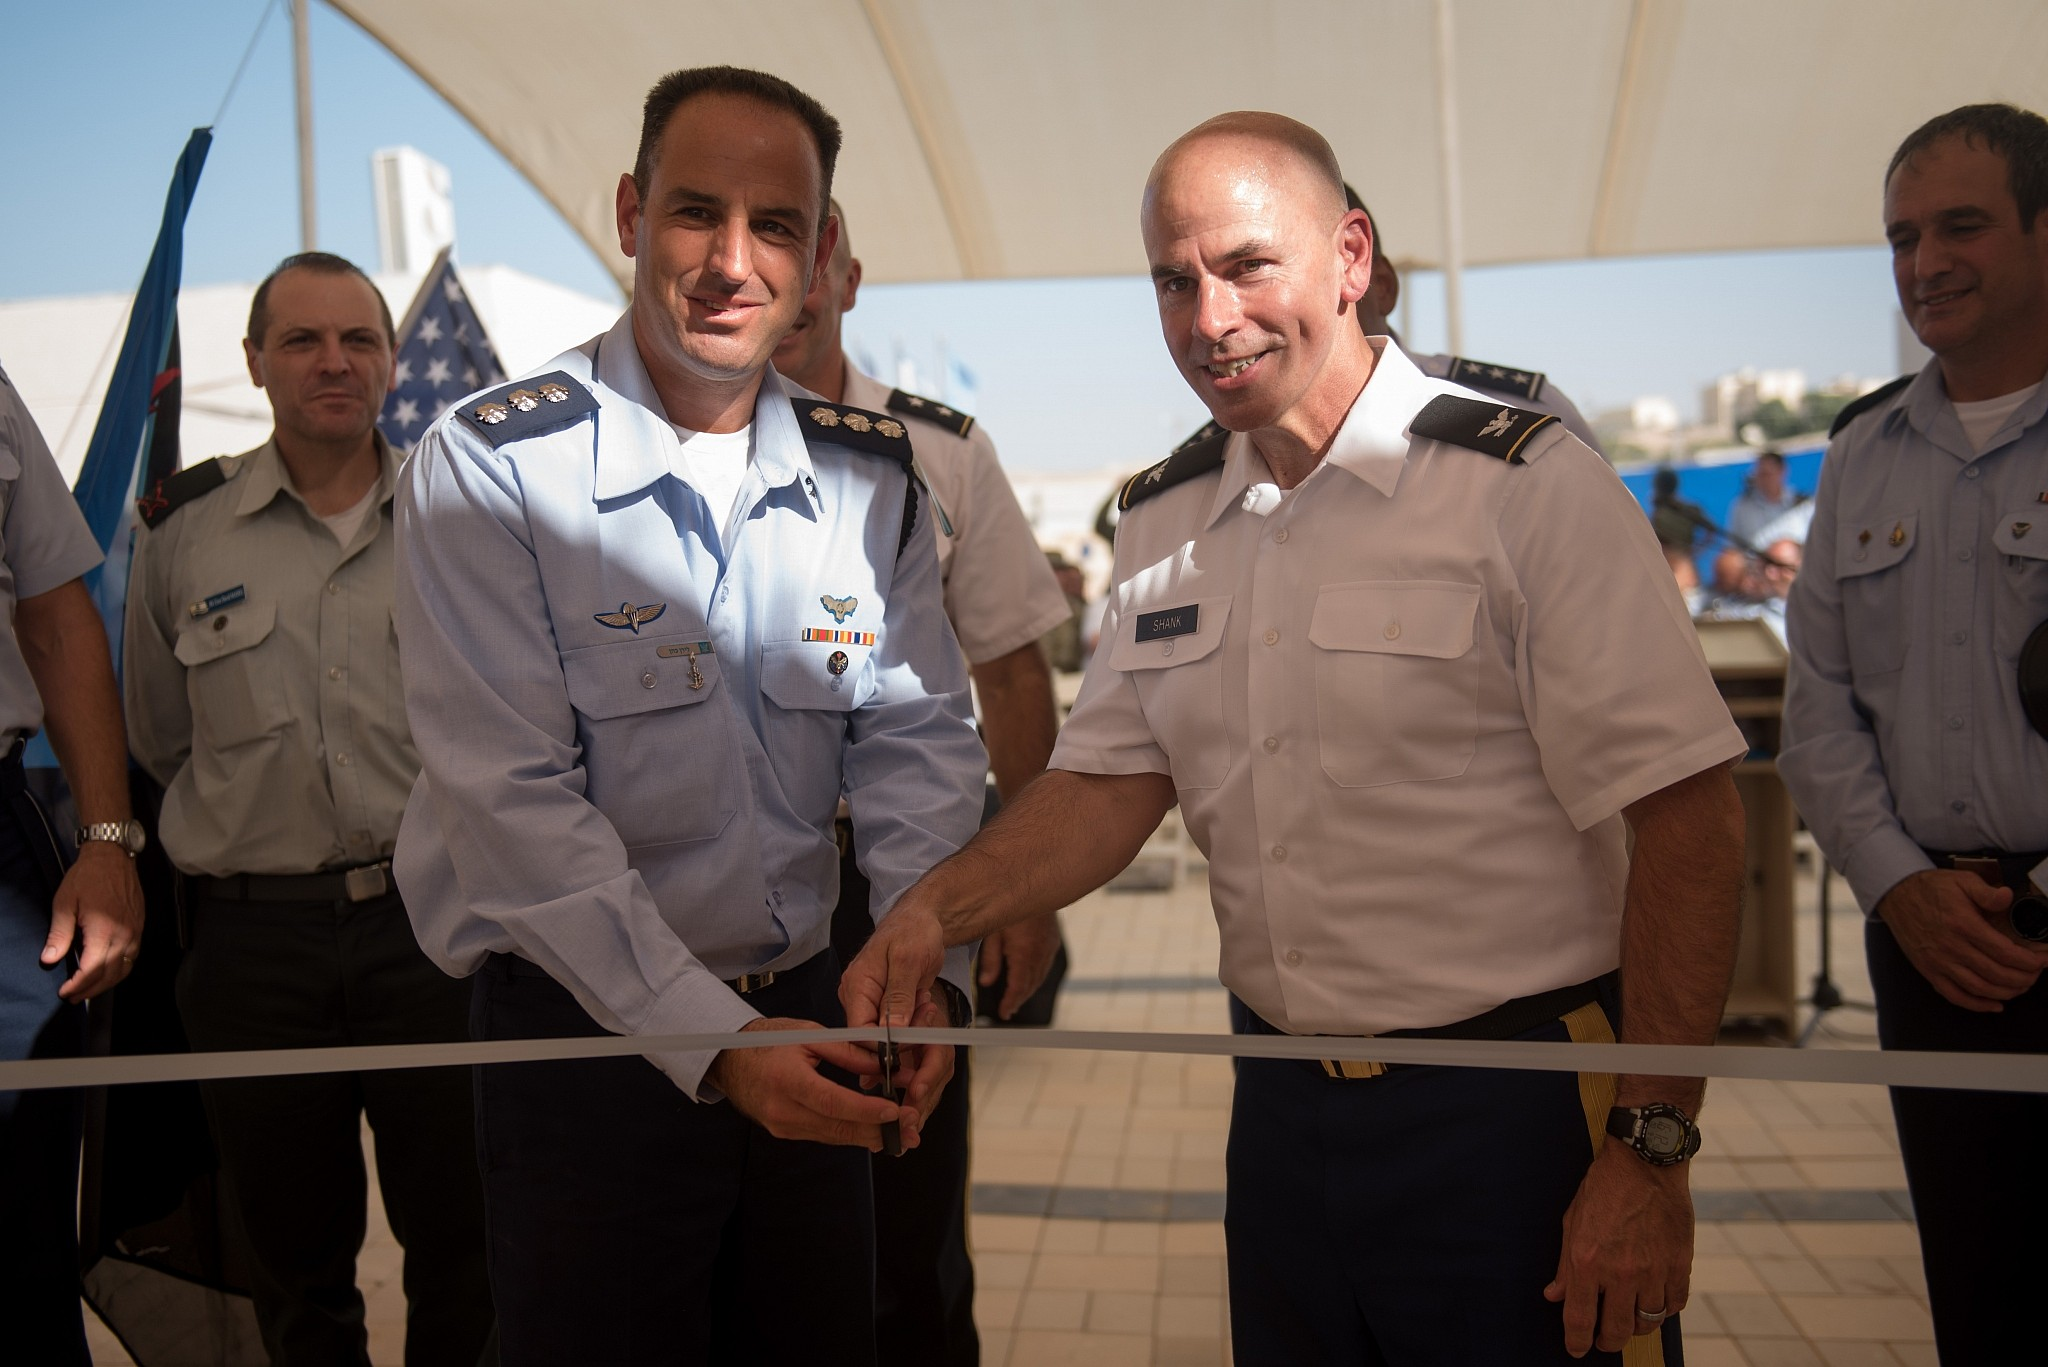 Israel opened the first United States military base